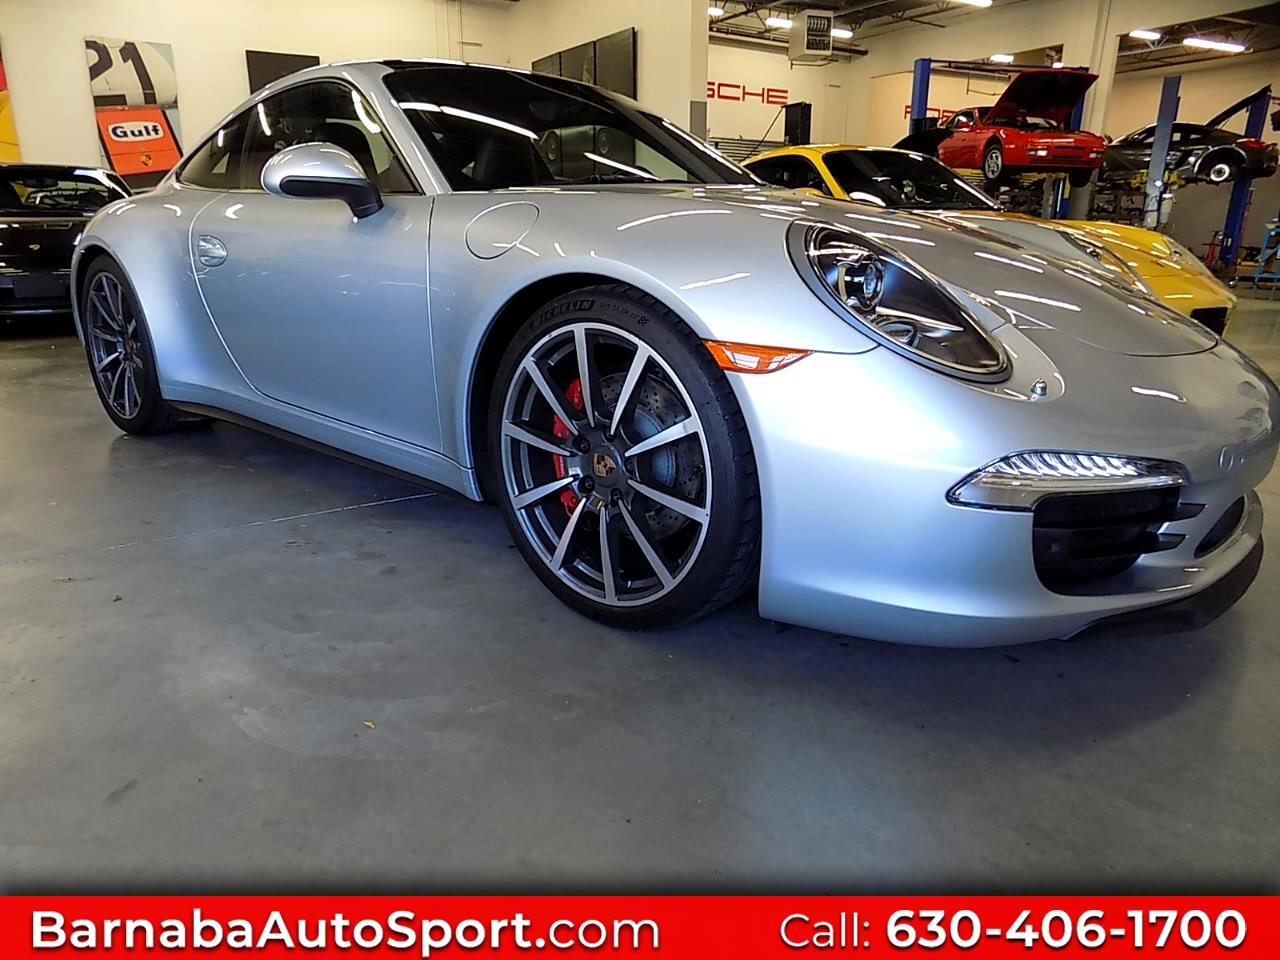 Porsche 911 Carrera 4S Coupe 2014